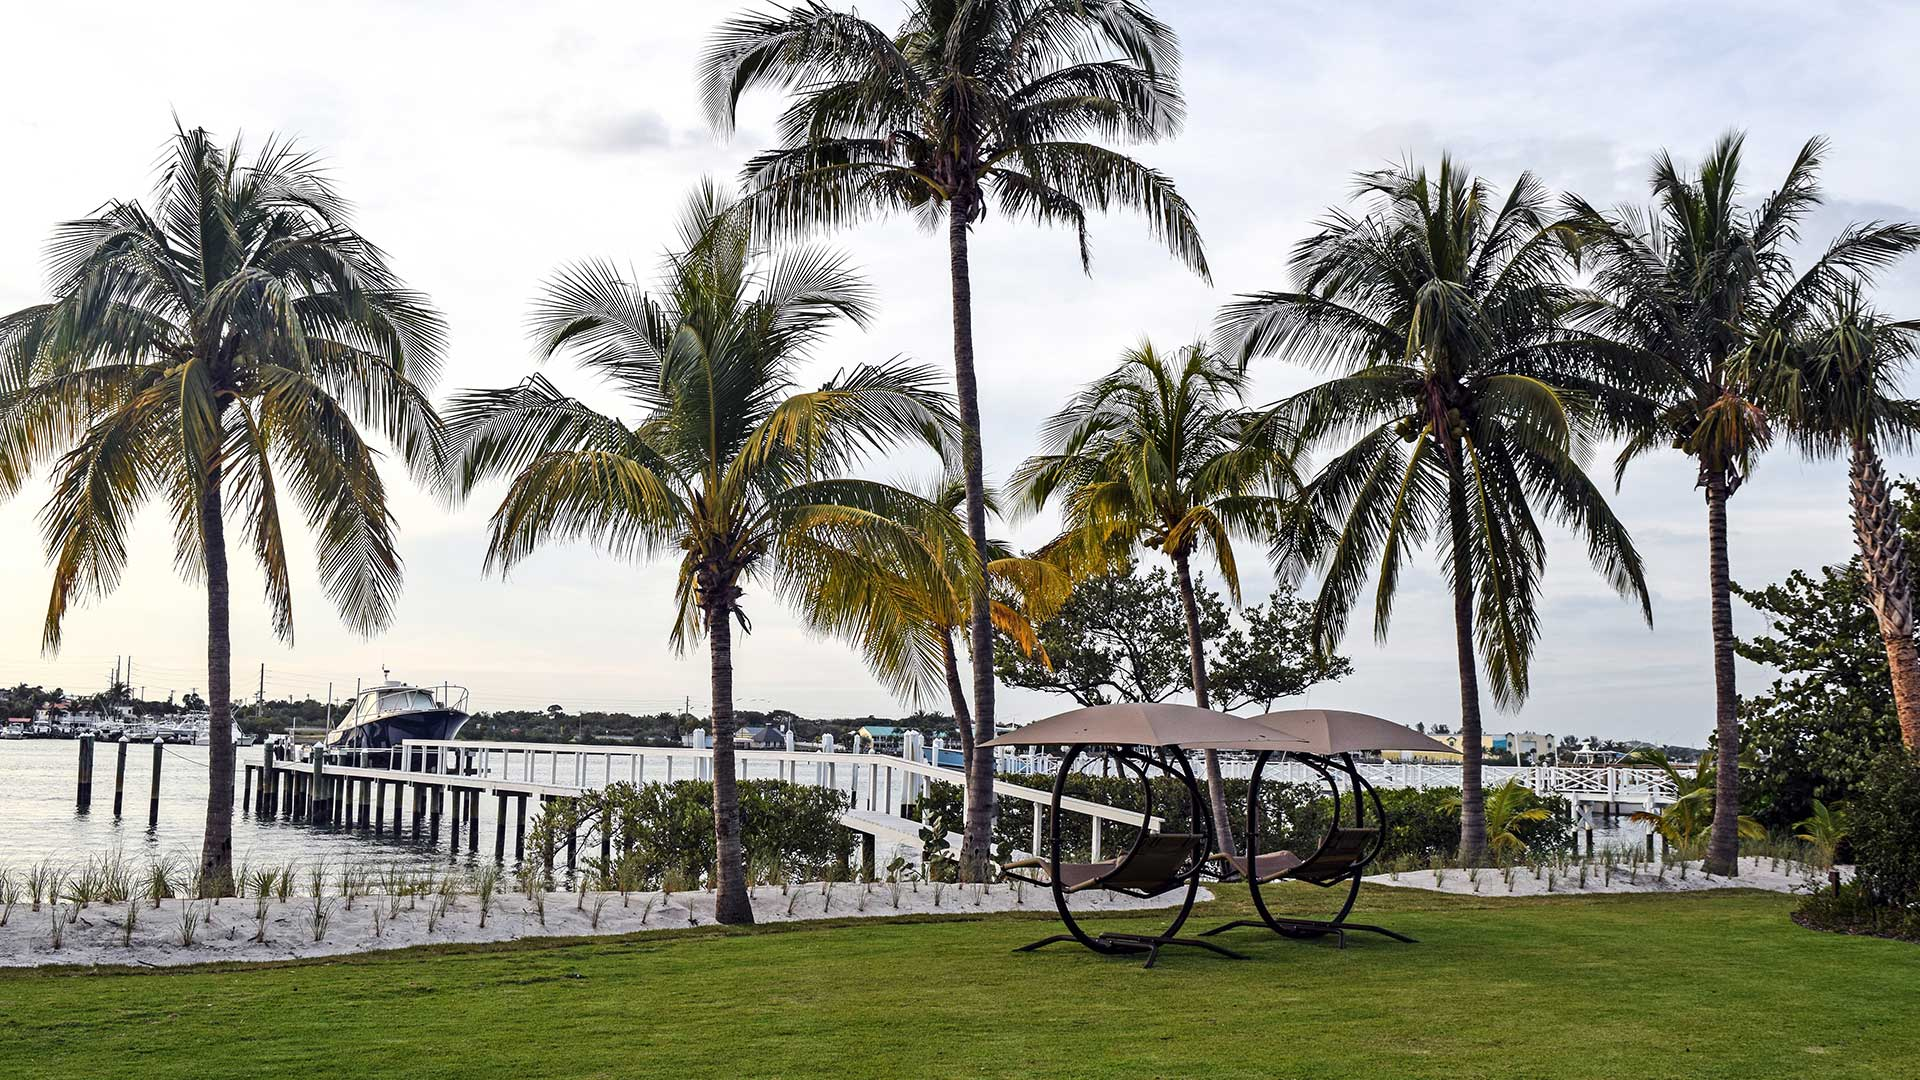 Lawn overlooking the water with palmtrees